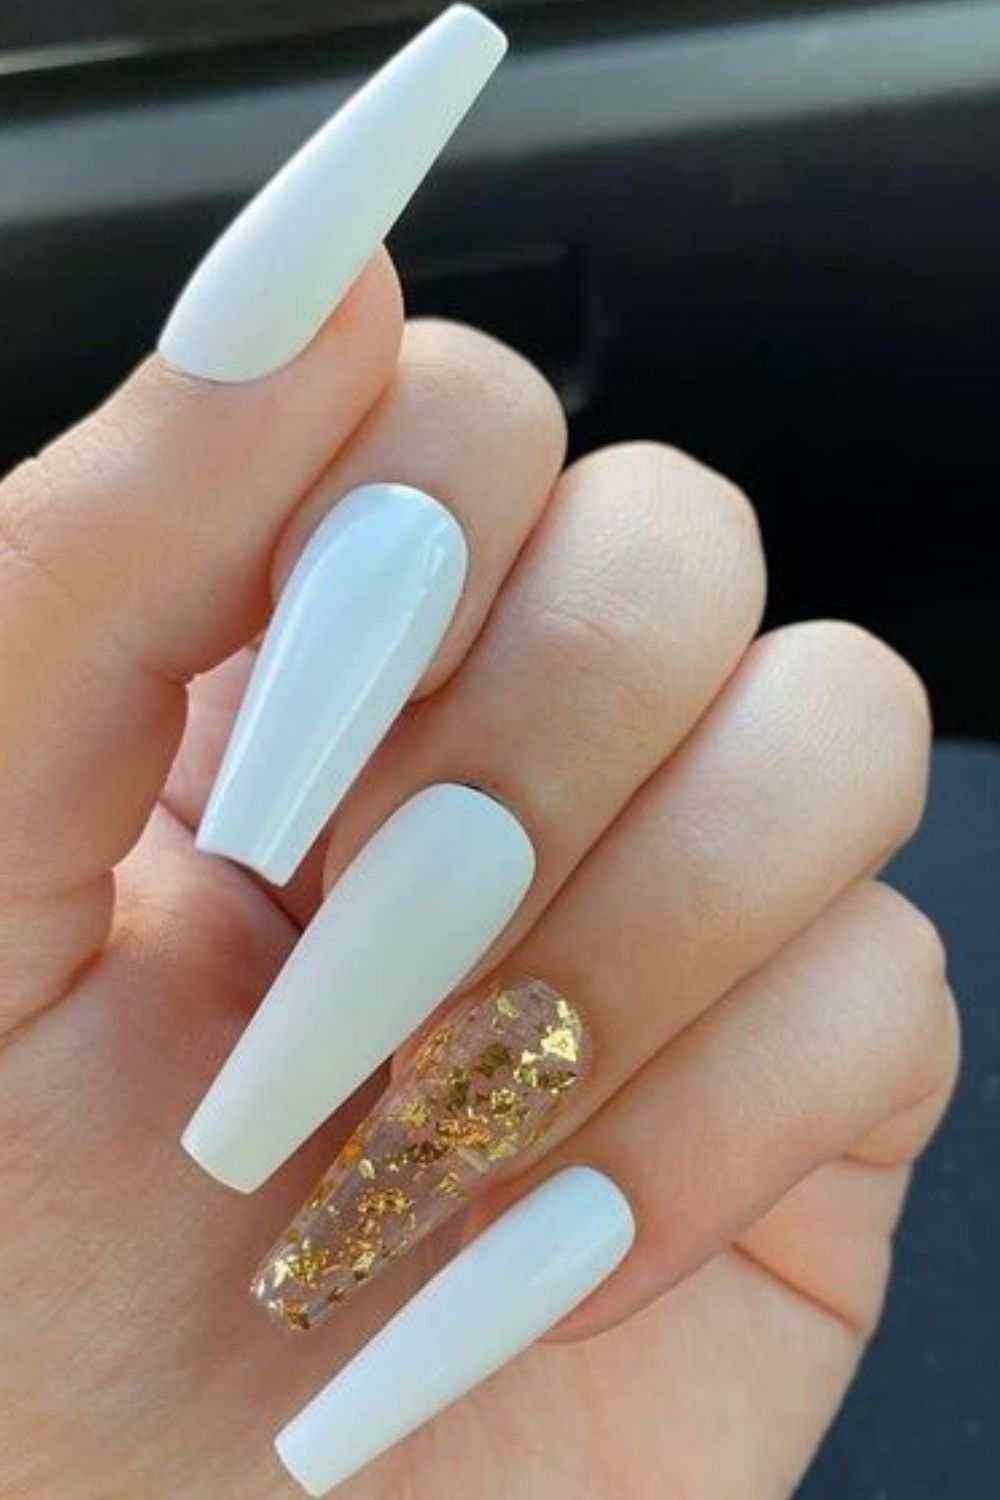 How Long Do Acrylic Nails Last And 14 Tips To Make Them Last Longer In 2020 White Acrylic Nails Long Acrylic Nails Swag Nails